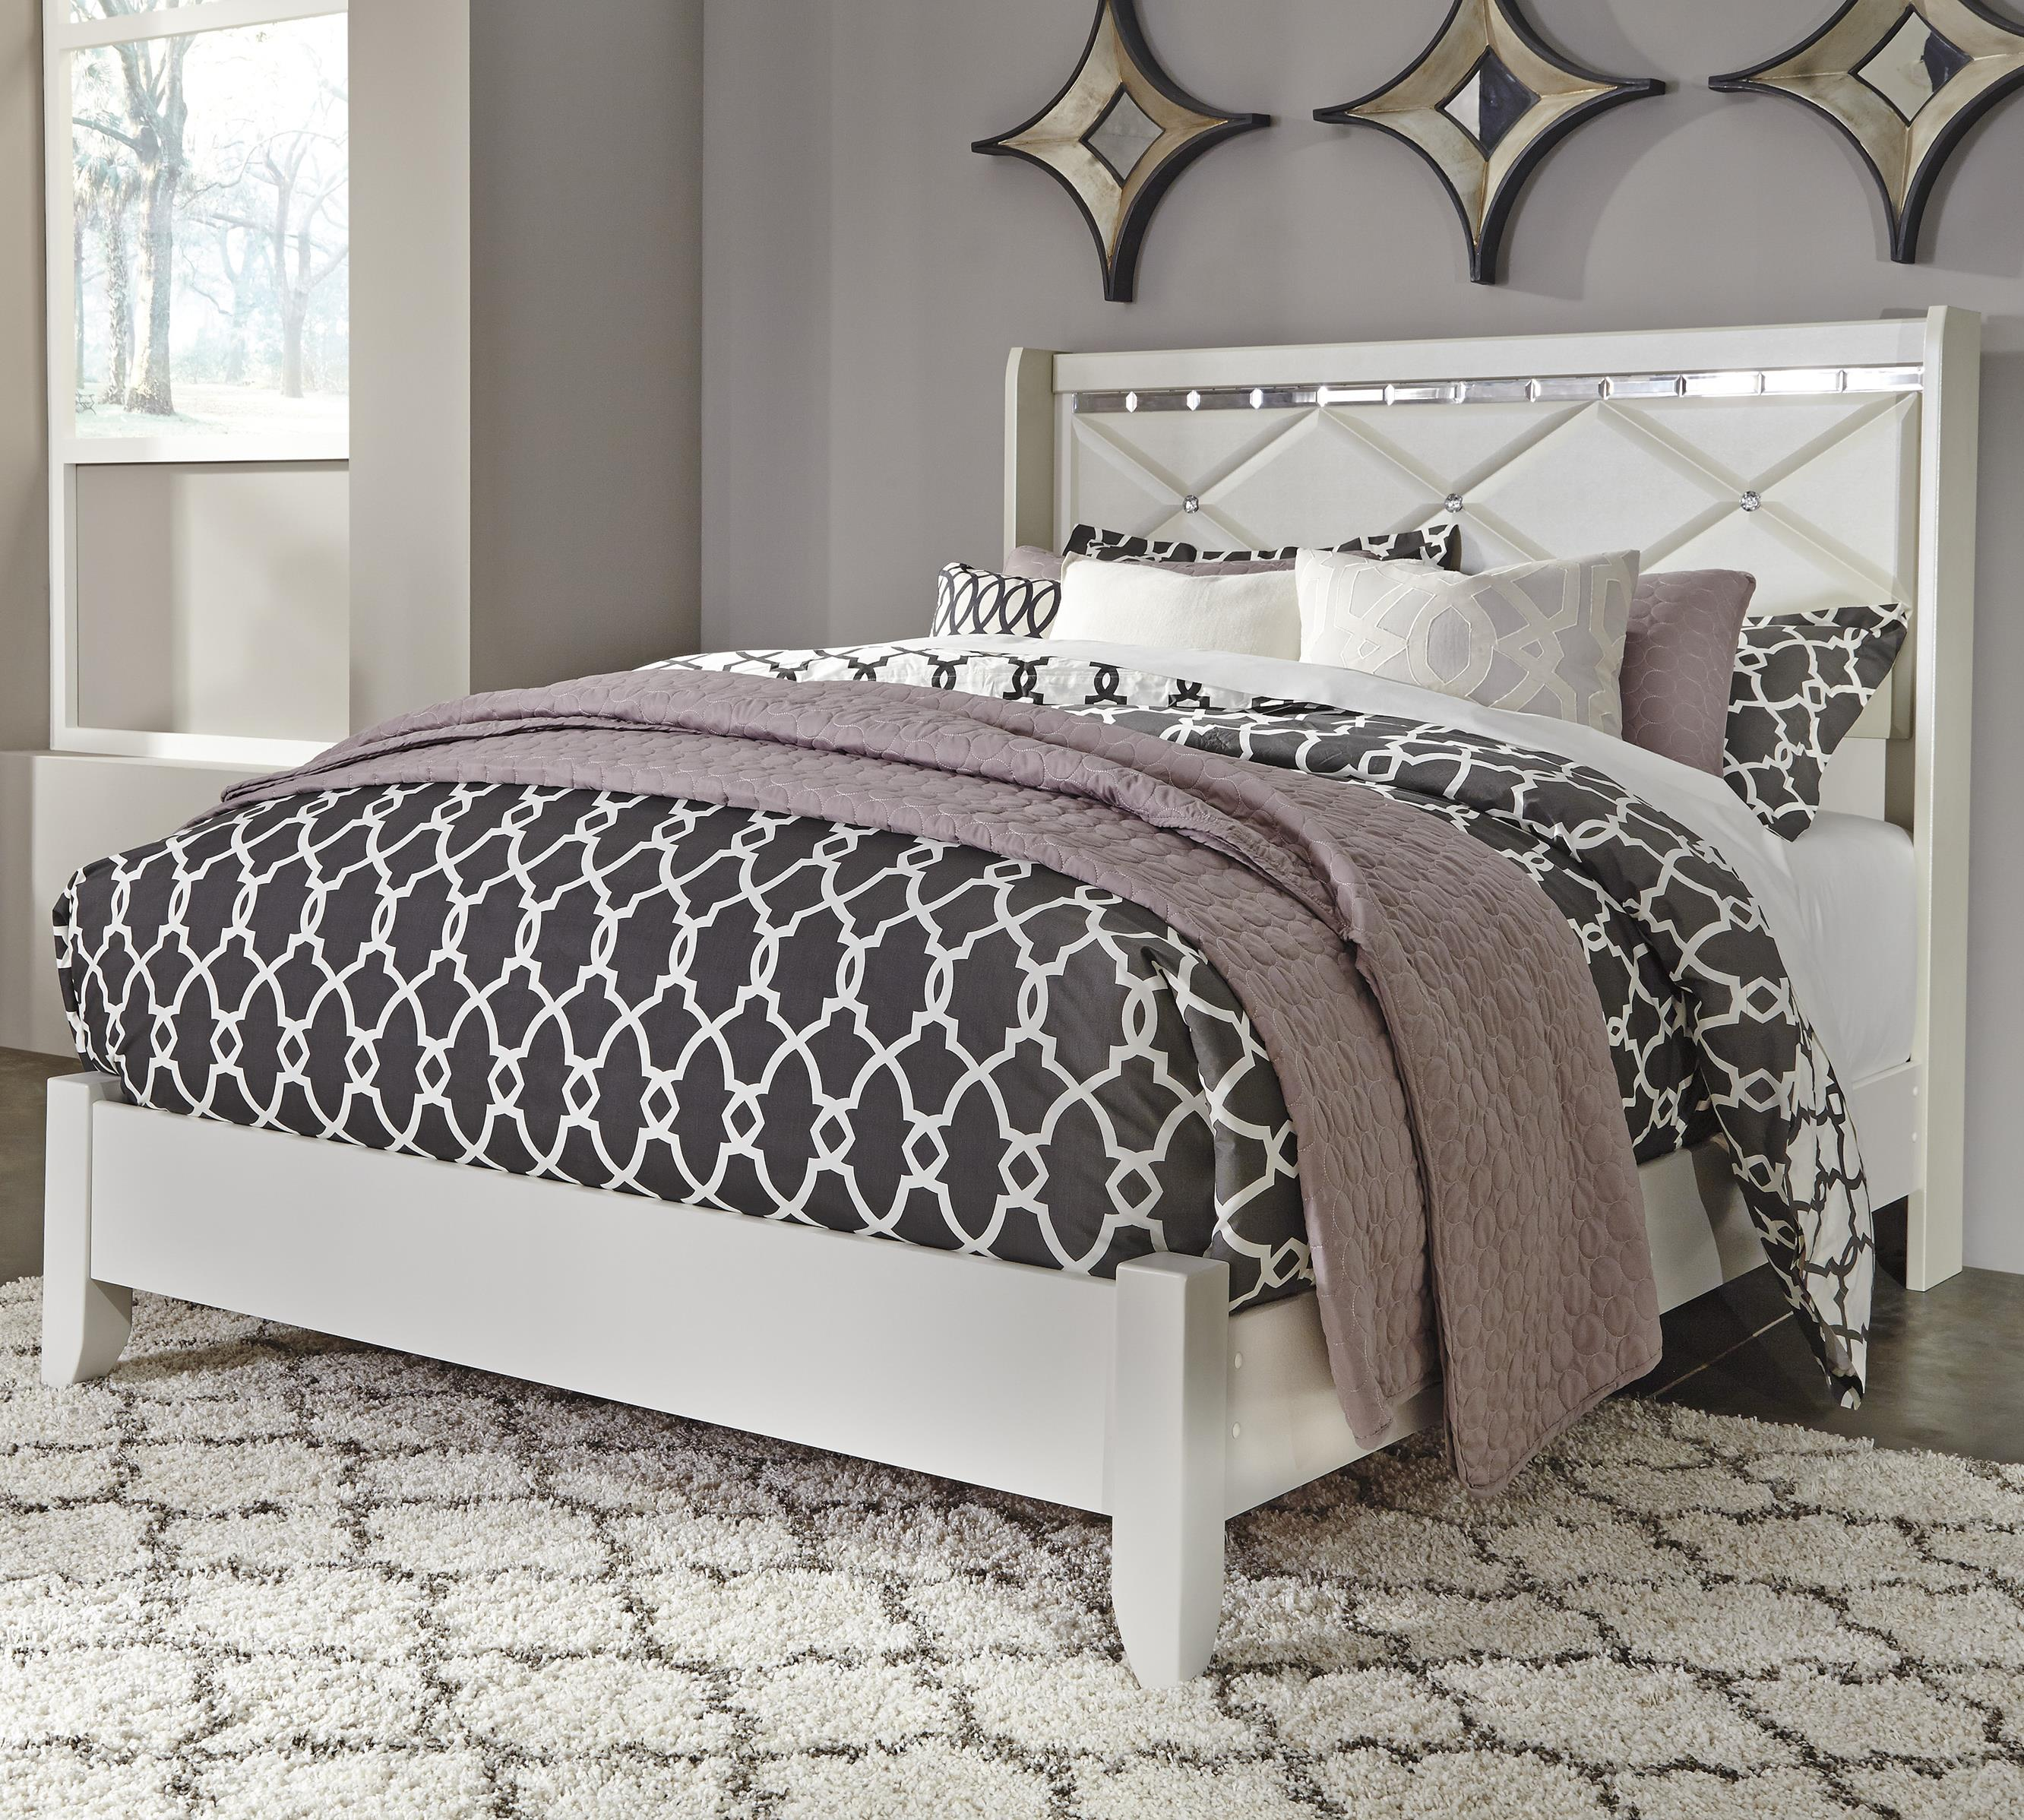 Signature Design By Ashley Dreamur Queen Panel Bed With Faux Crystals Becker Furniture World